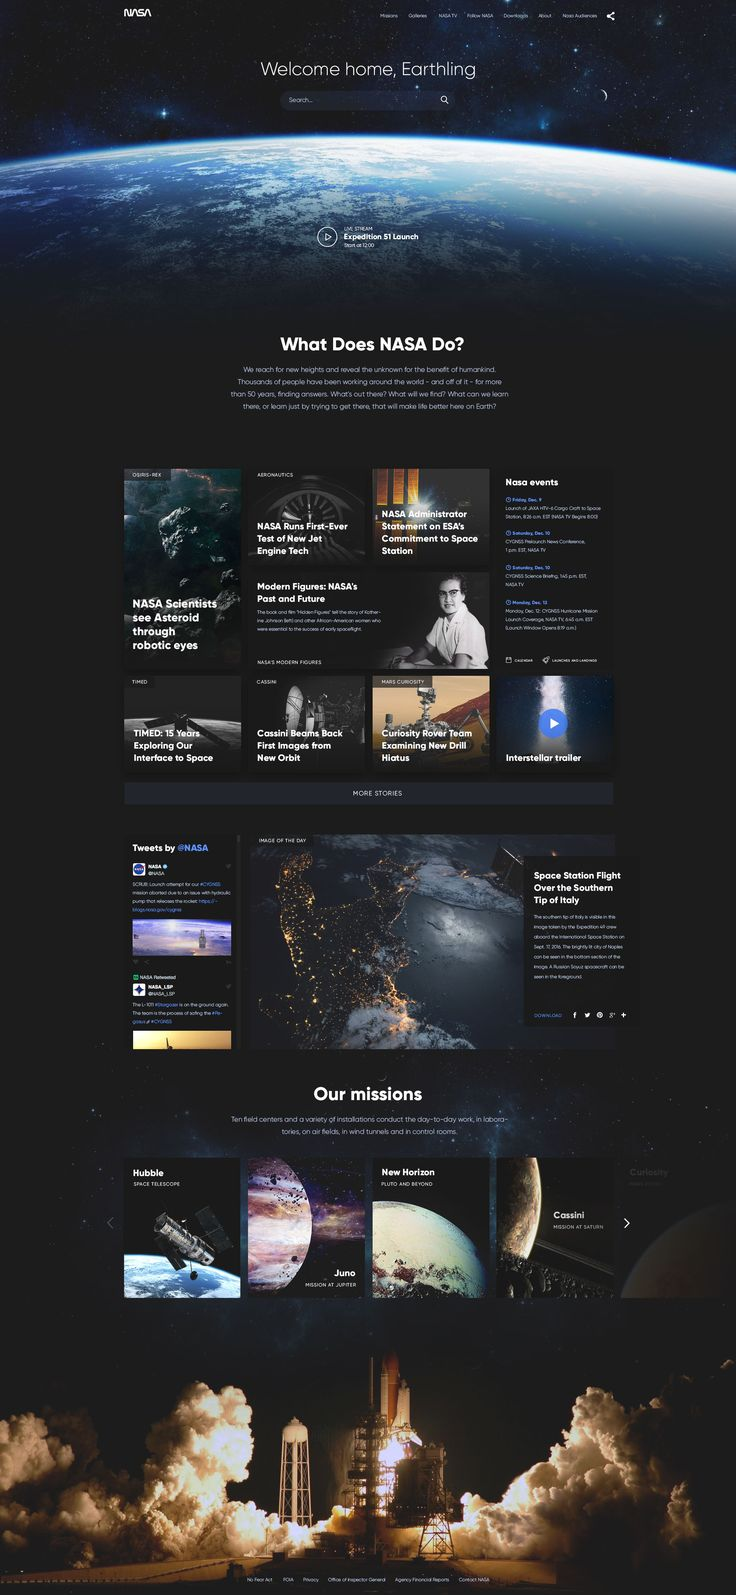 17 best images about web design on pinterest | website design